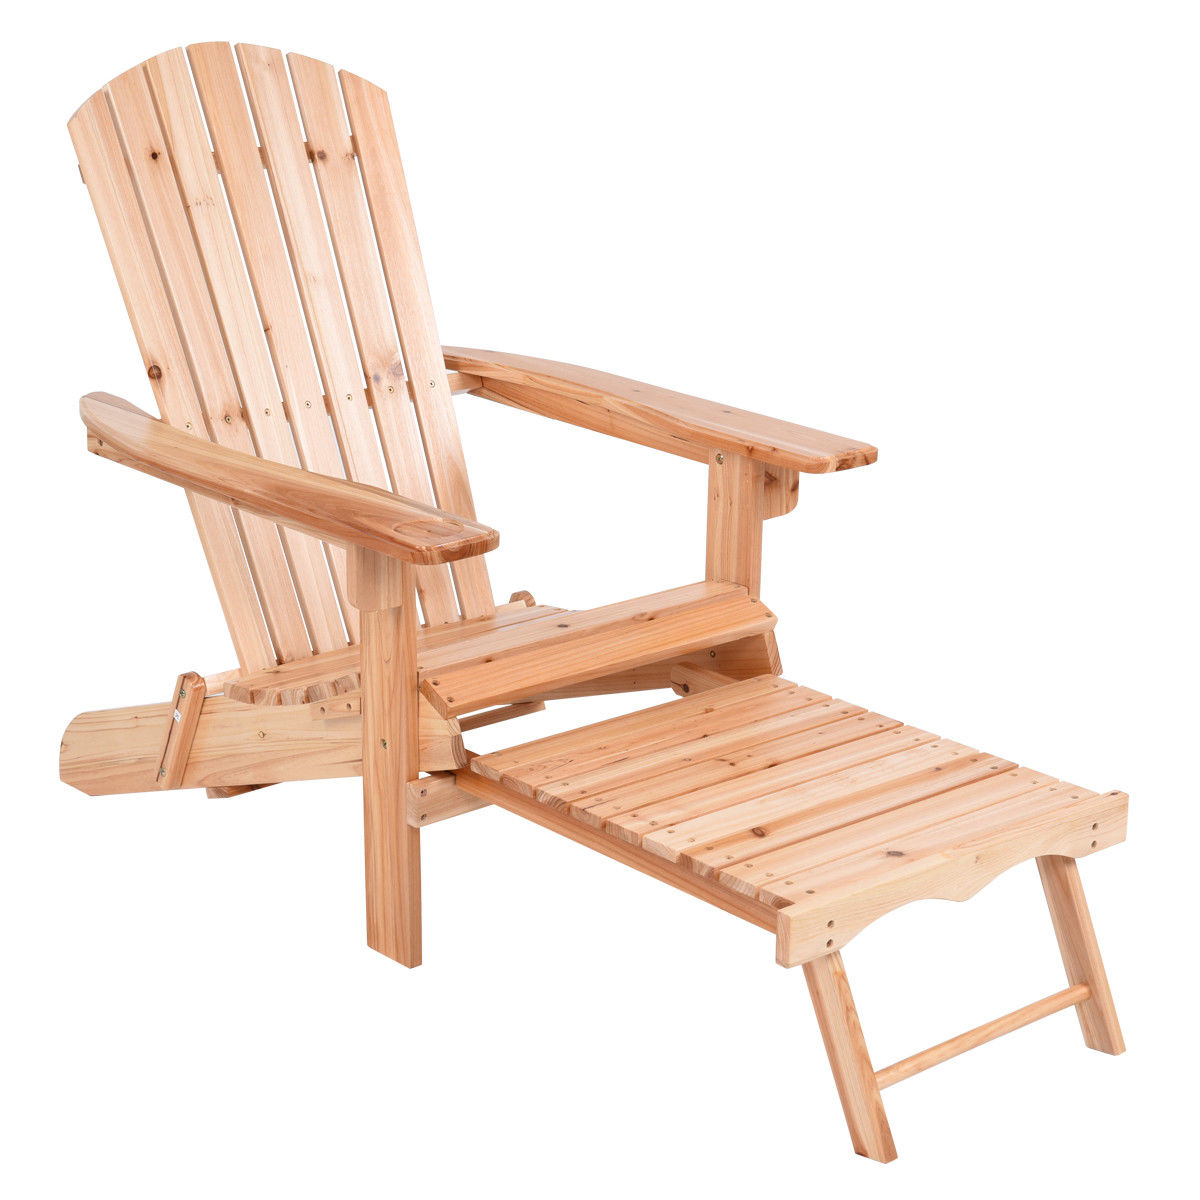 Giantex Foldable Adirondack Chair Wood with Removable Ottoman Patio Deck Garden Chairs Modern Outdoor Furniture HW56973 outdoor patio adirondack wood bench chair rocking chair contemporary solid wood log deck garden furniture single rocker chair